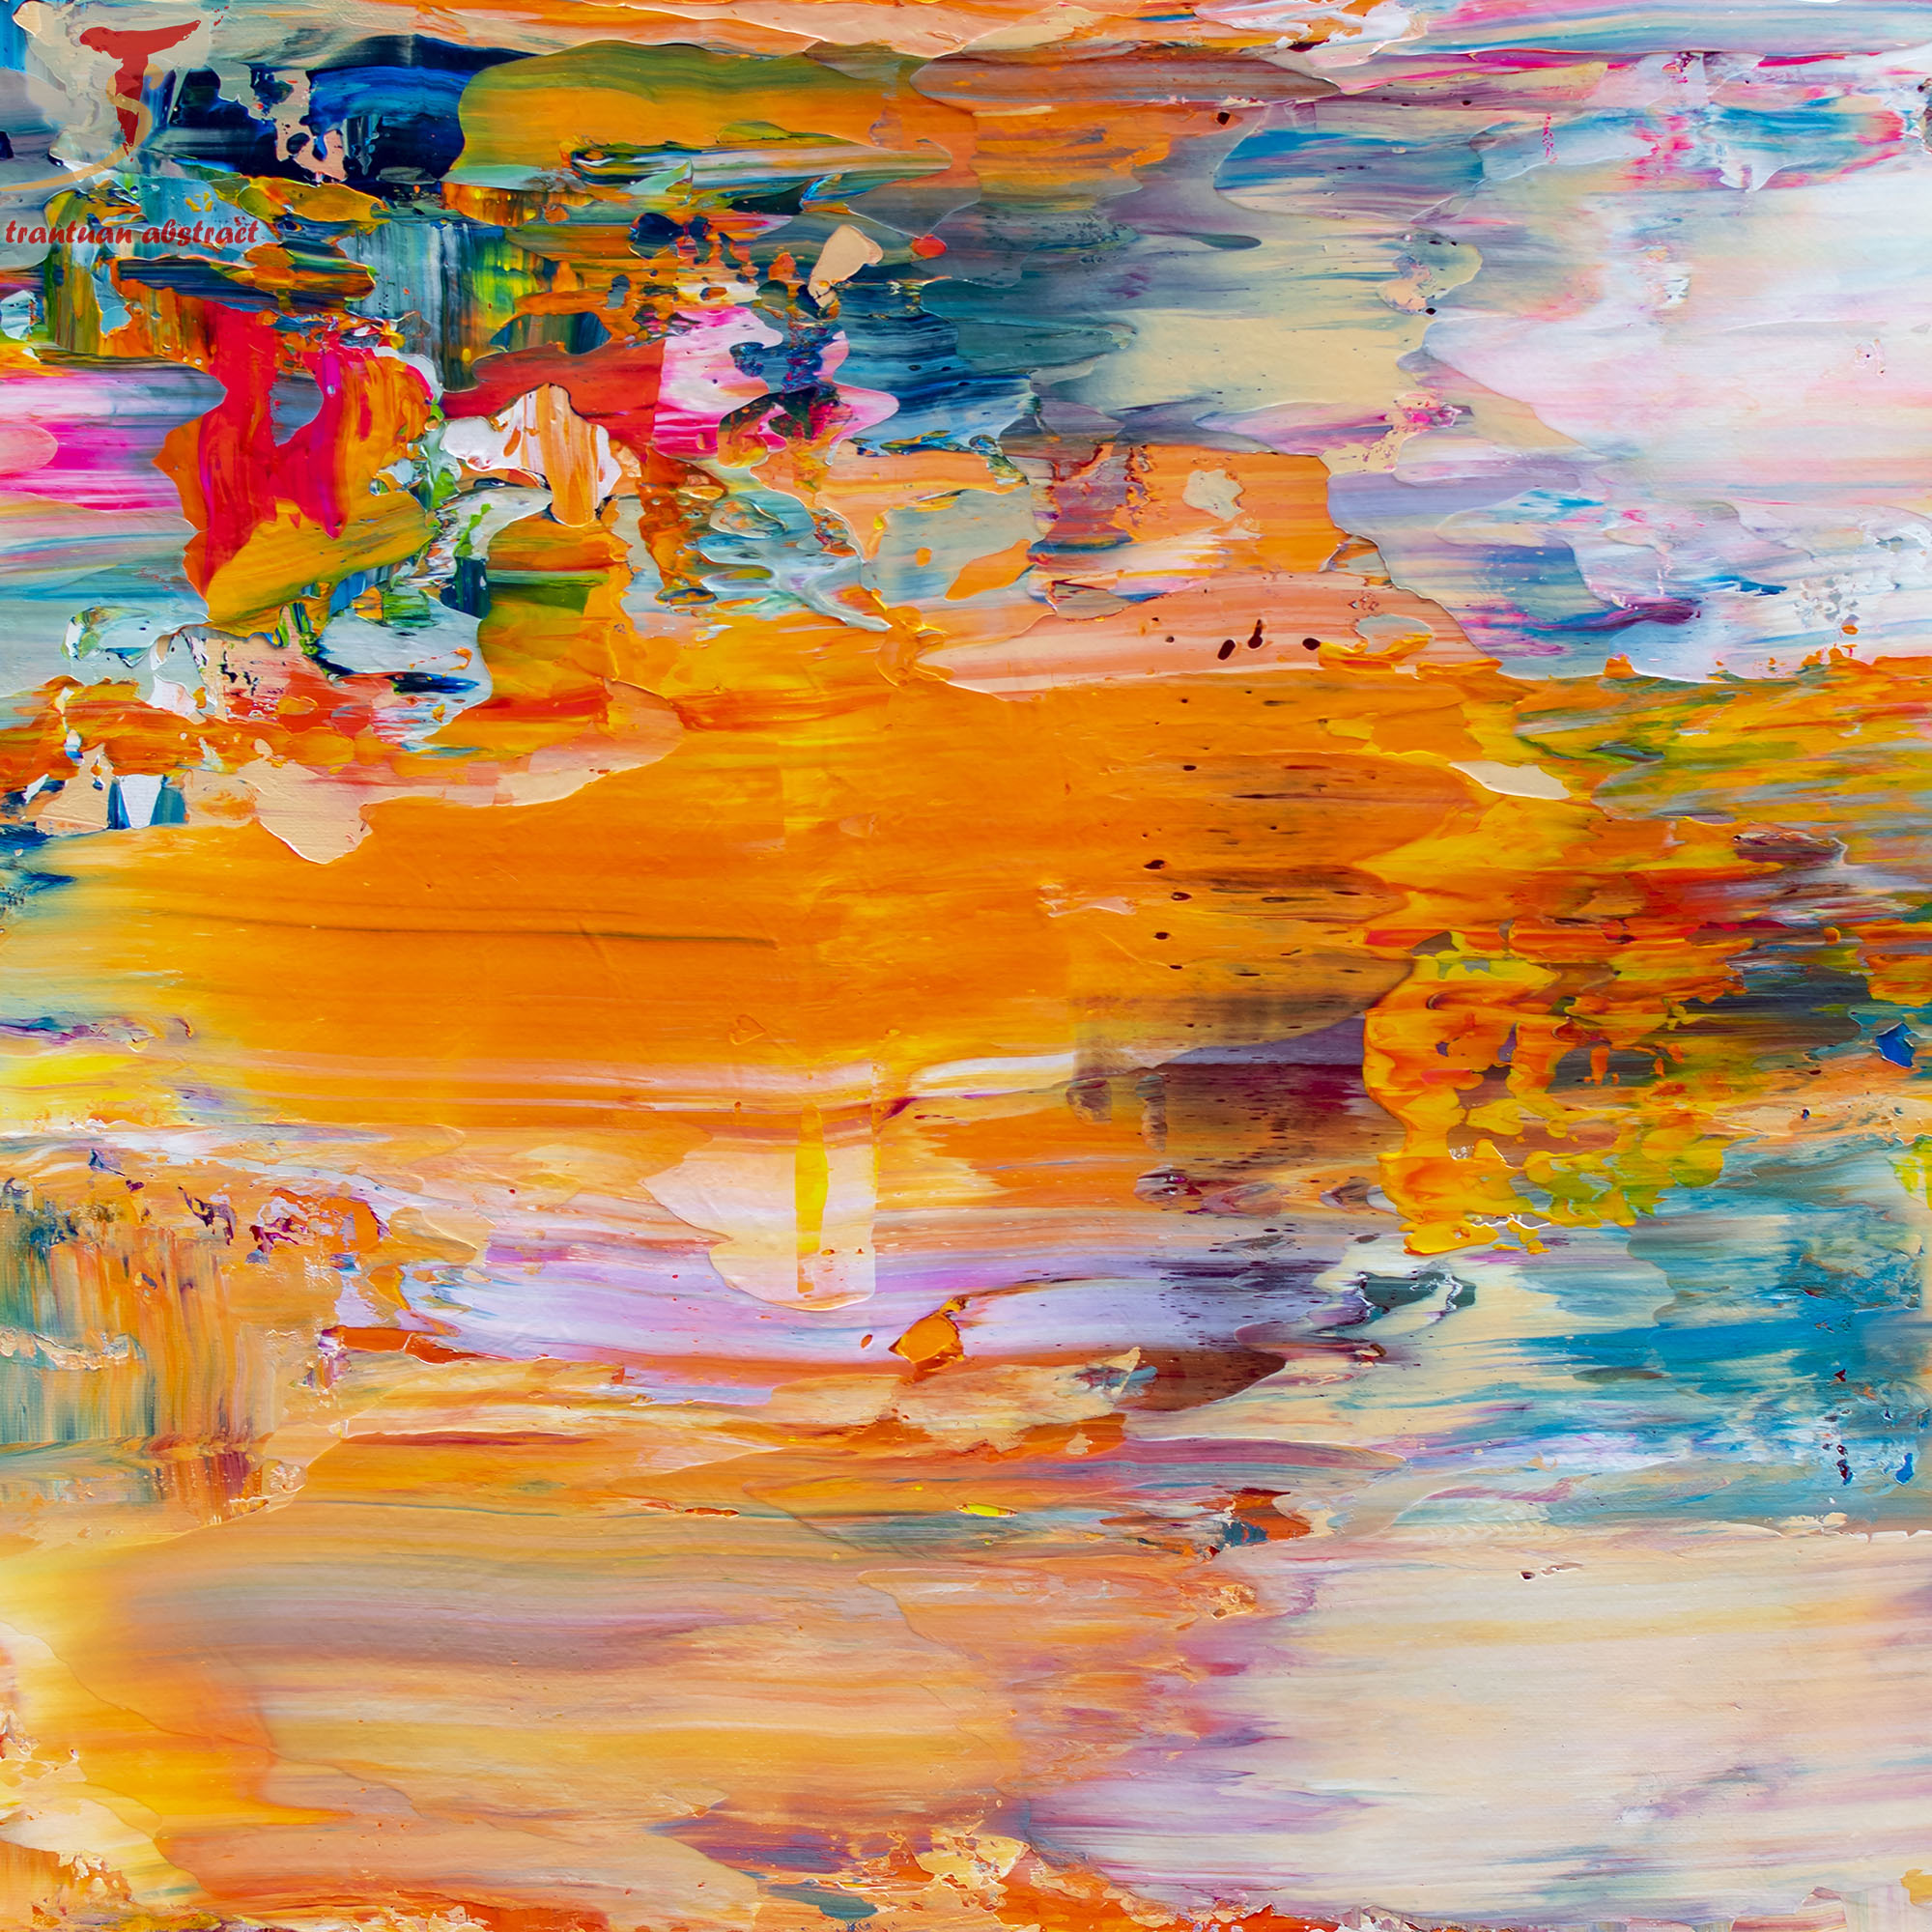 Tran Tuan Abstract Remote Beauty 2021 135 x 80 x 5 cm Acrylic on Canvas Painting Detail